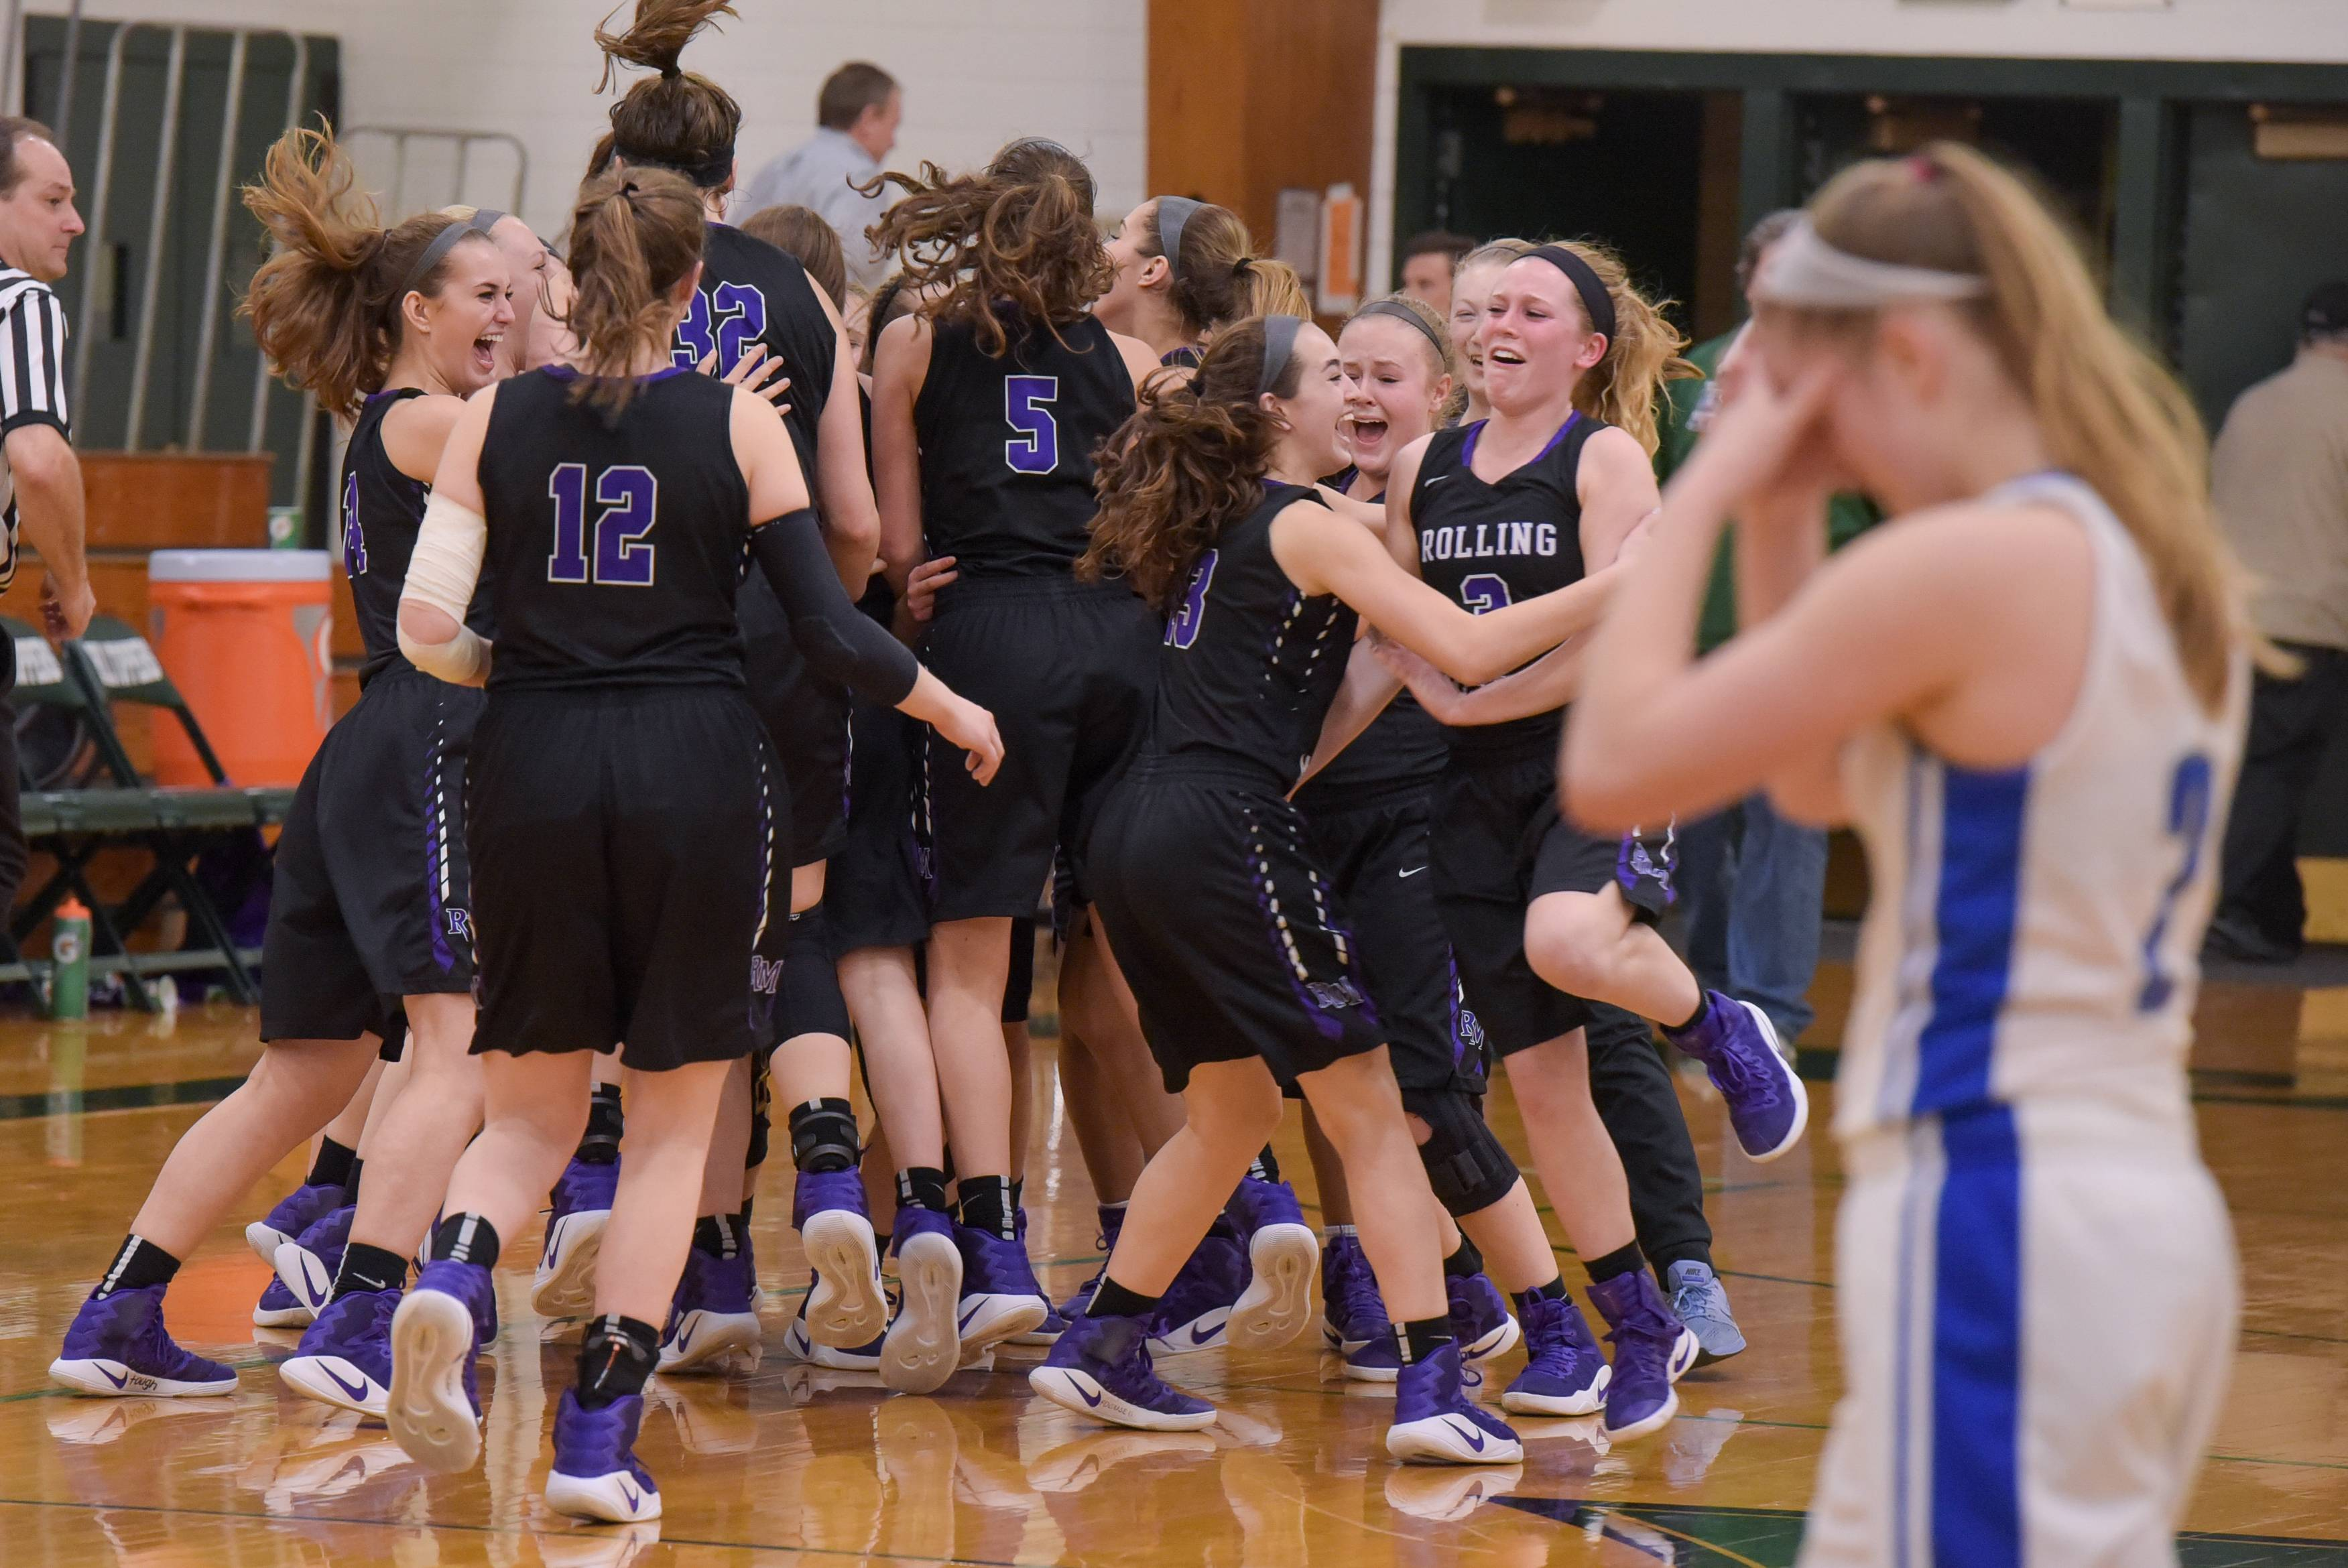 Rolling Meadow celebrates winning the Class 4A sectional semifinal girls basketball game 43-40 over Wheaton North Monday at Glenbard West.